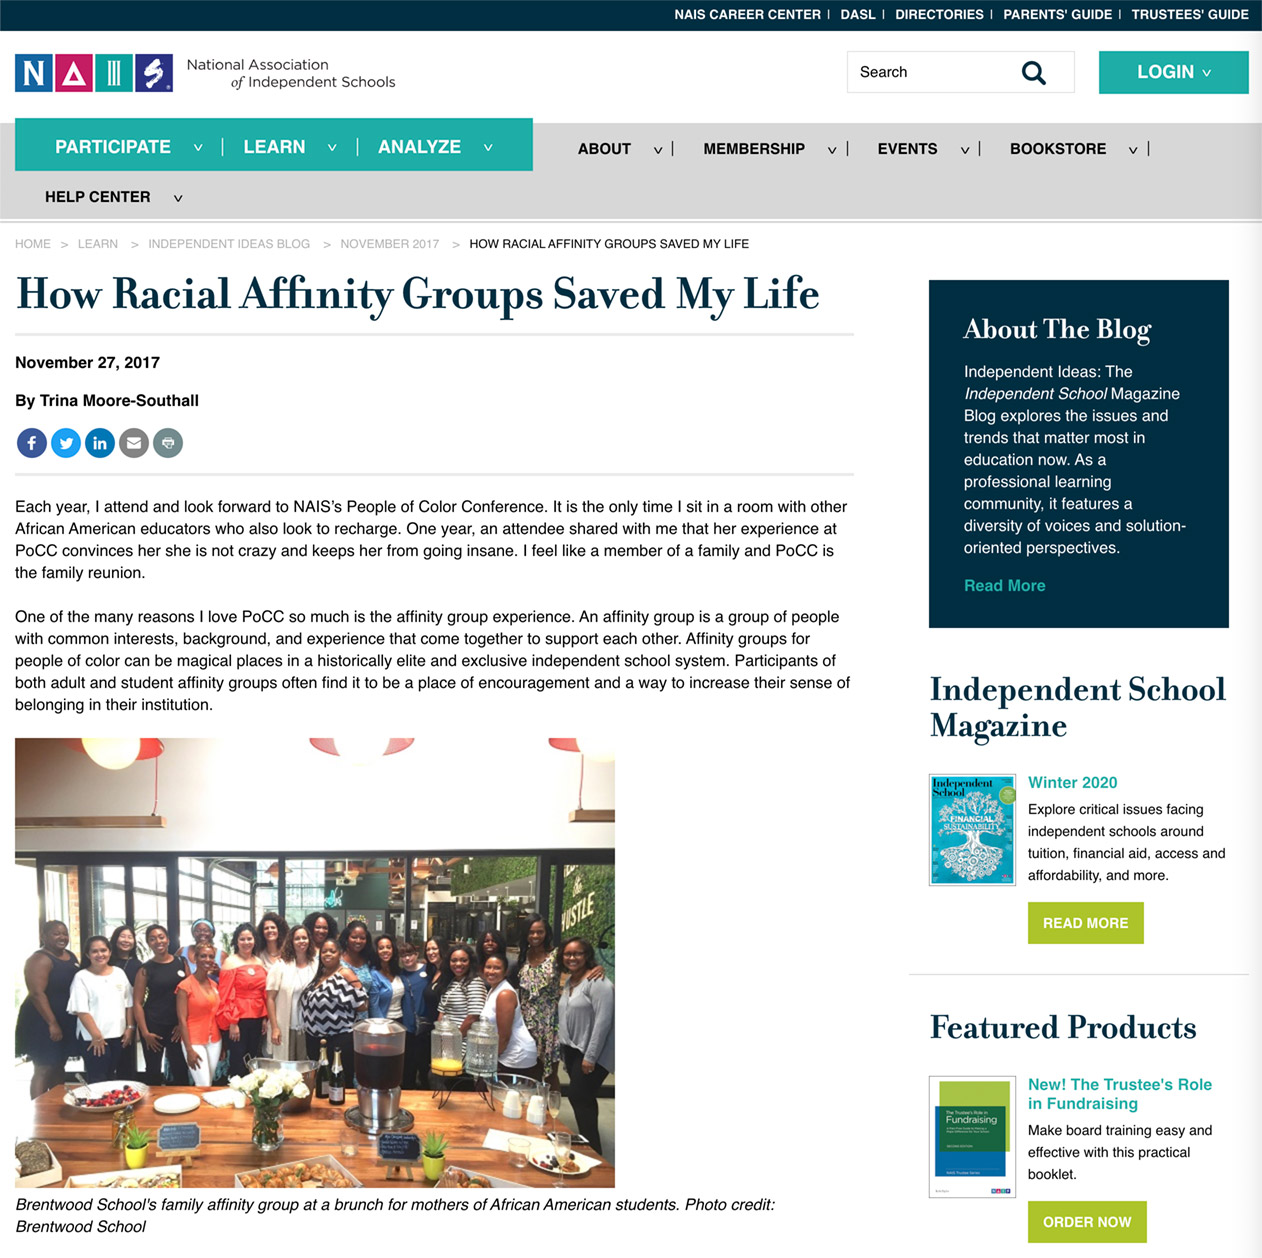 How Racial Affinity Groups Saved My Life